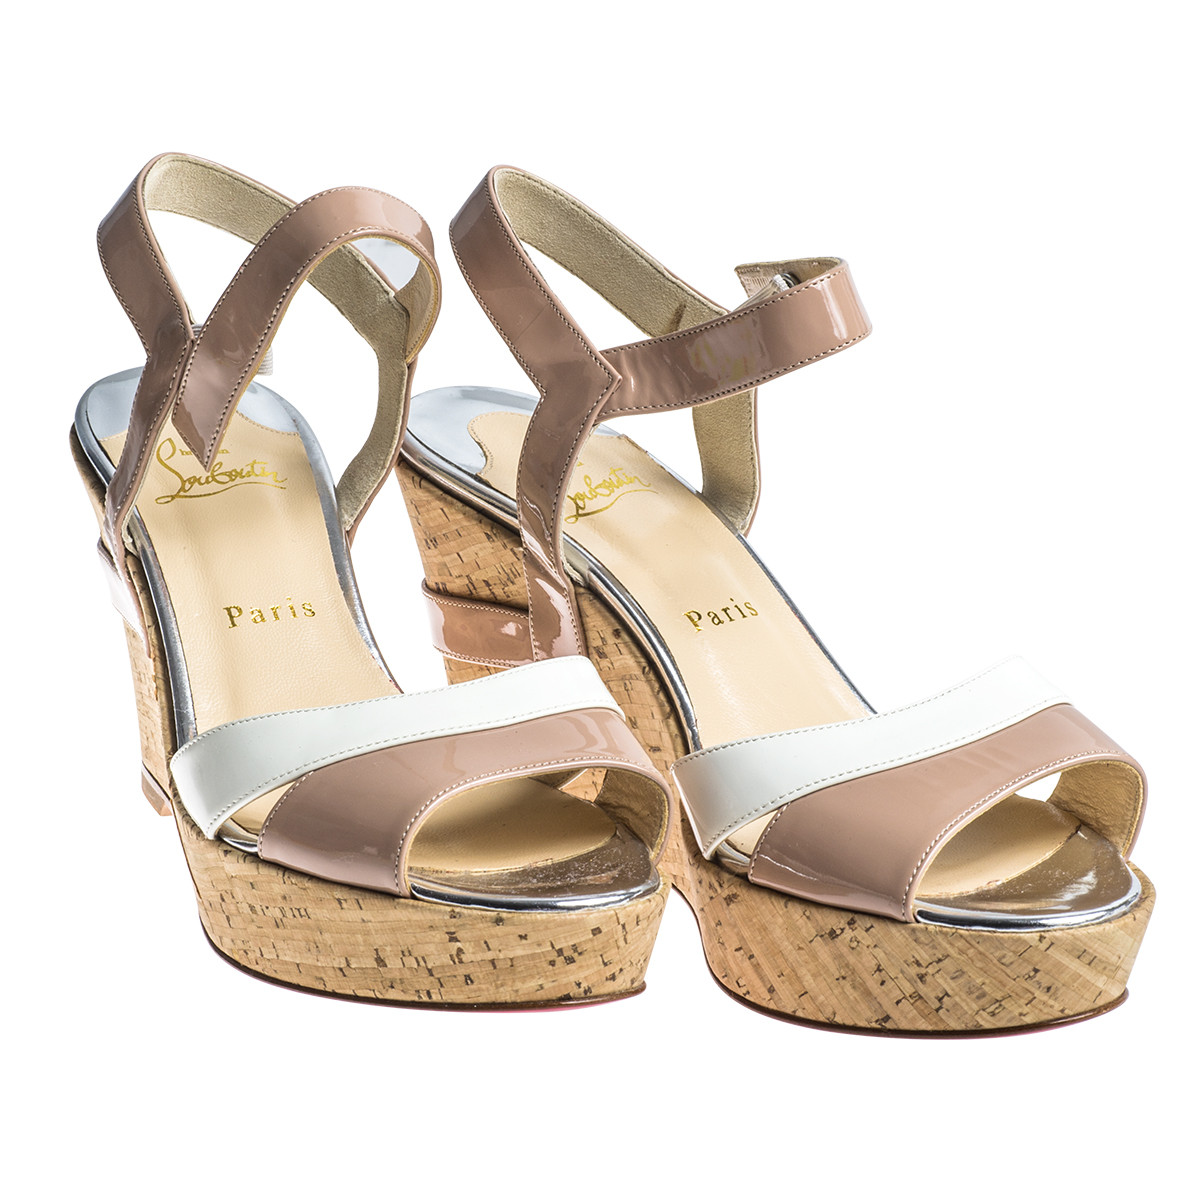 Vintage Christian Louboutin White & Nude Patent Leather Carteron Wedge Sandals